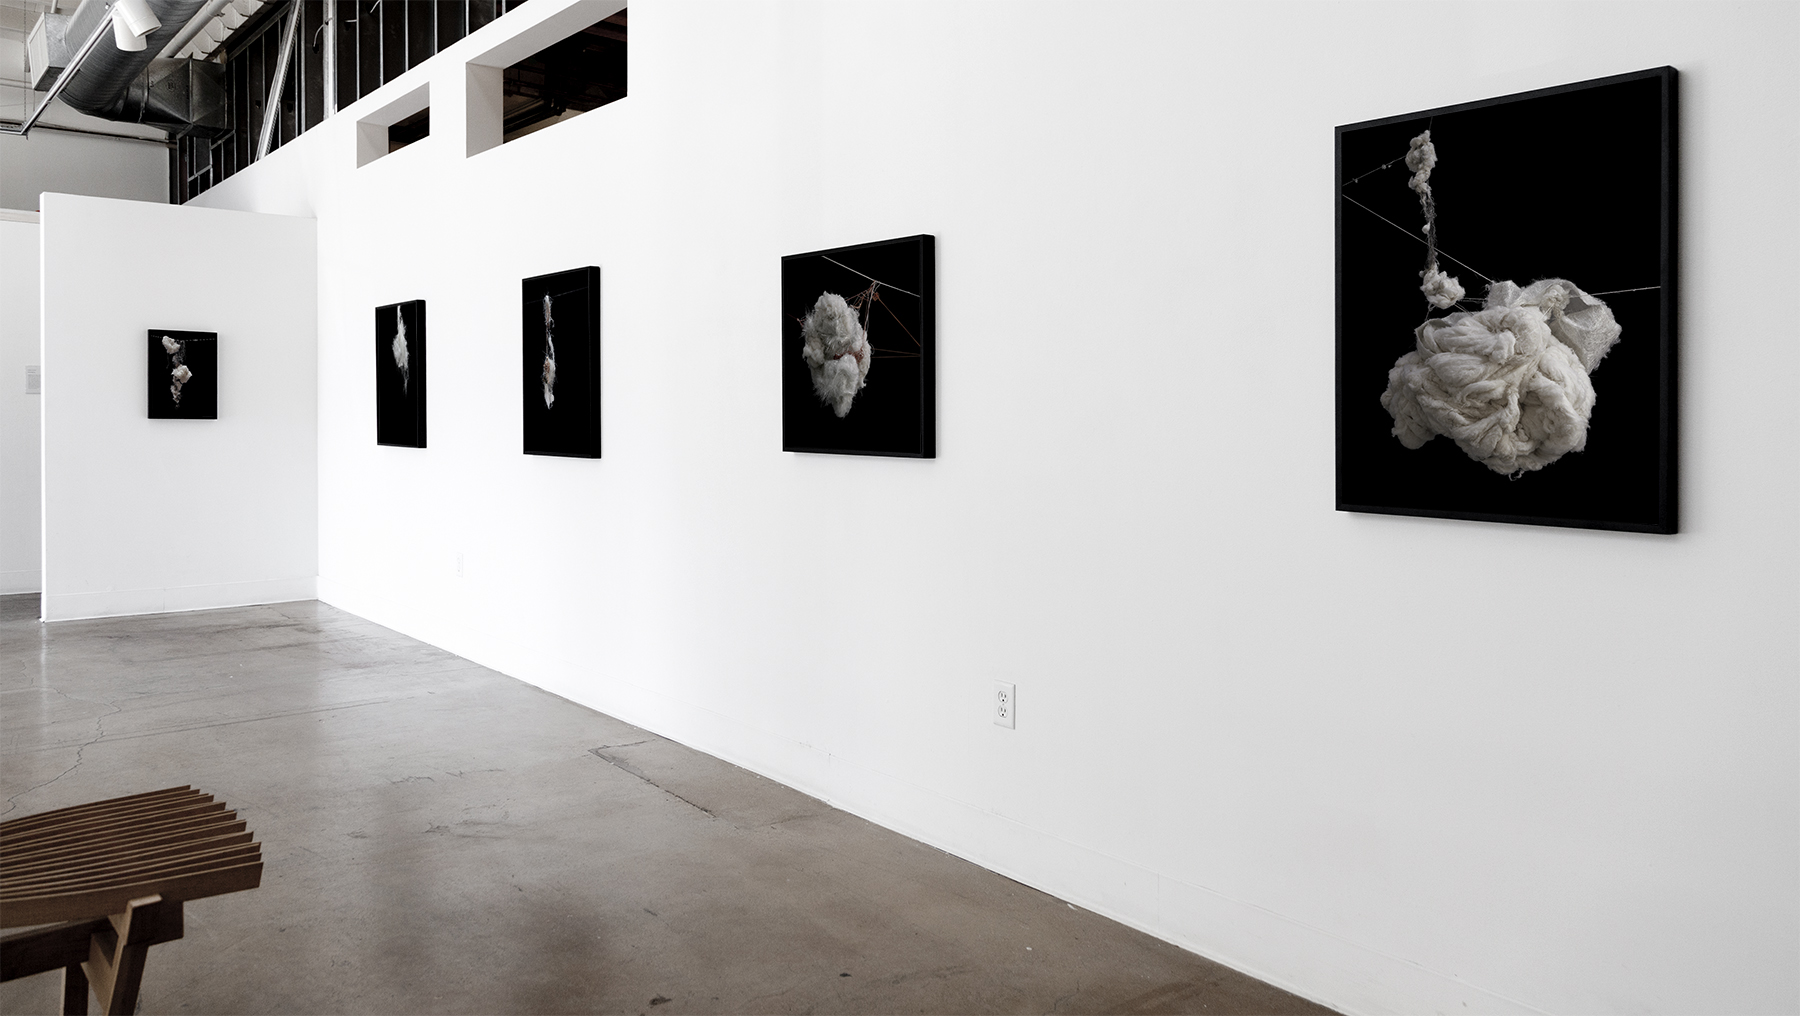 Installation view, Swarm Gallery, 2012